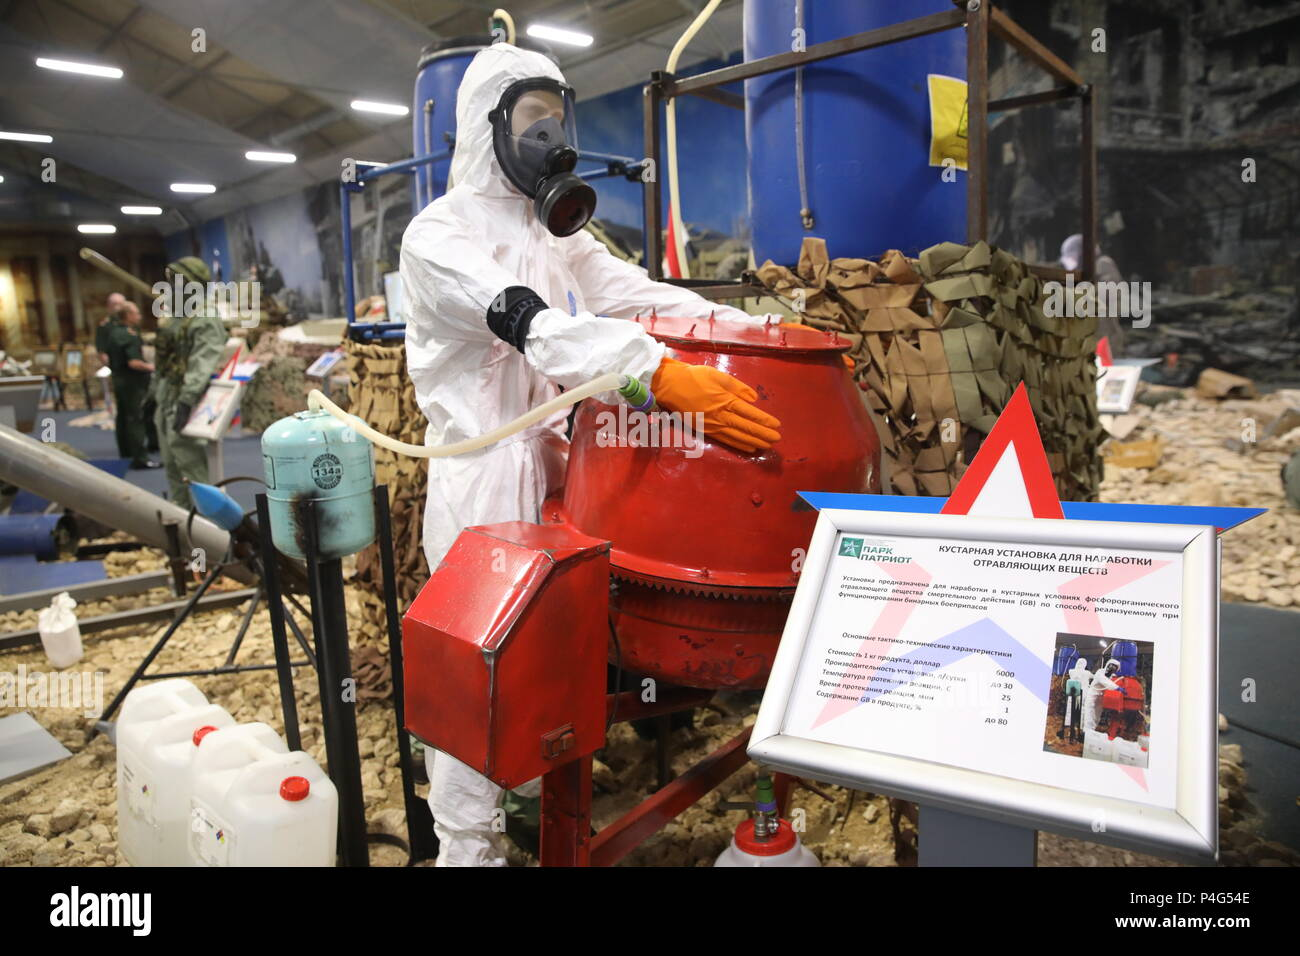 Russia. 22nd June, 2018. MOSCOW REGION, RUSSIA - JUNE 22, 2018: An improvised toxic gas and explosive compounds accumulating facility on display during a joint briefing by the Russian Foreign and Defense Ministries on the issues occurred while investigating use of chemical weapons in Syria, at the Patriot Park. Mikhail Pochuyev/TASS Credit: ITAR-TASS News Agency/Alamy Live News - Stock Image